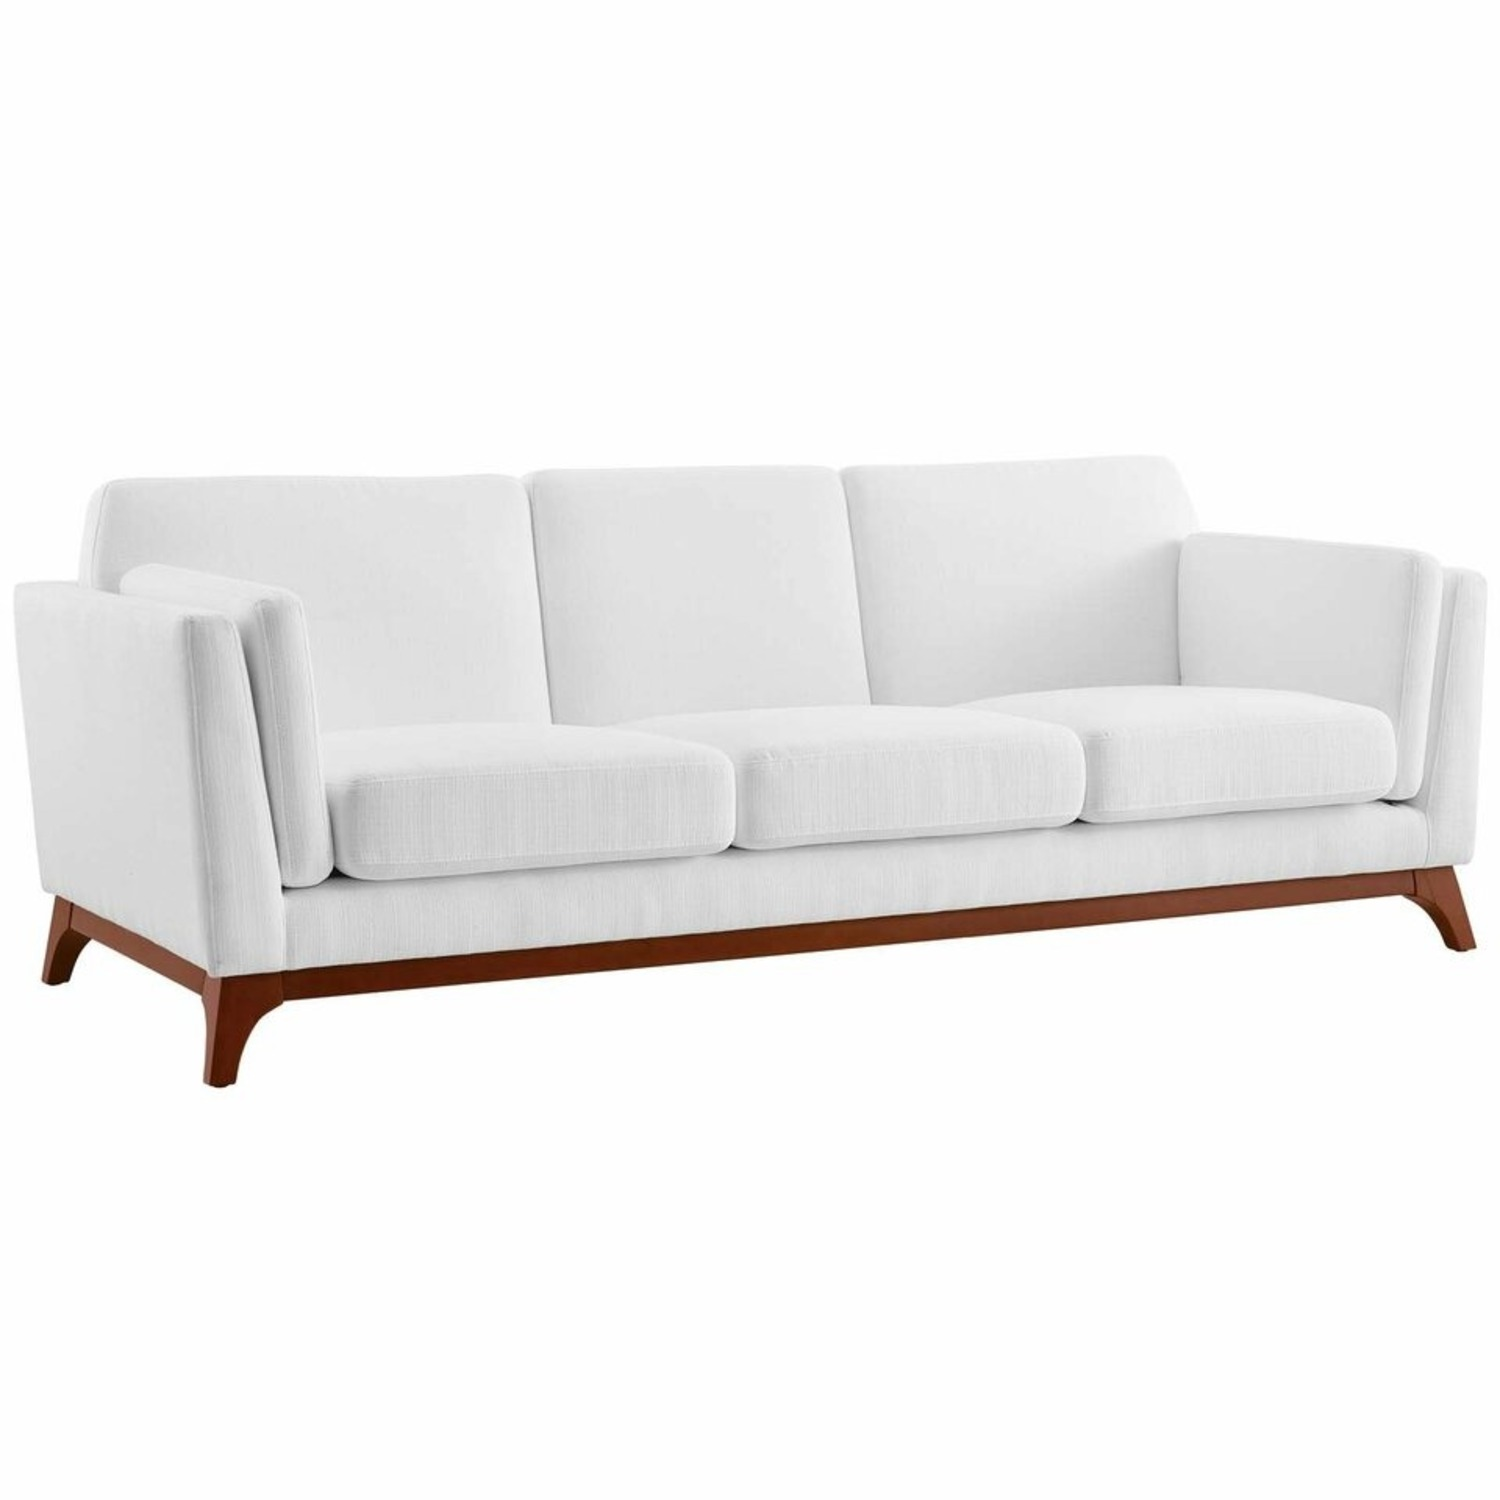 Sofa In White Fabric W/ Solid Wood Frame - image-0